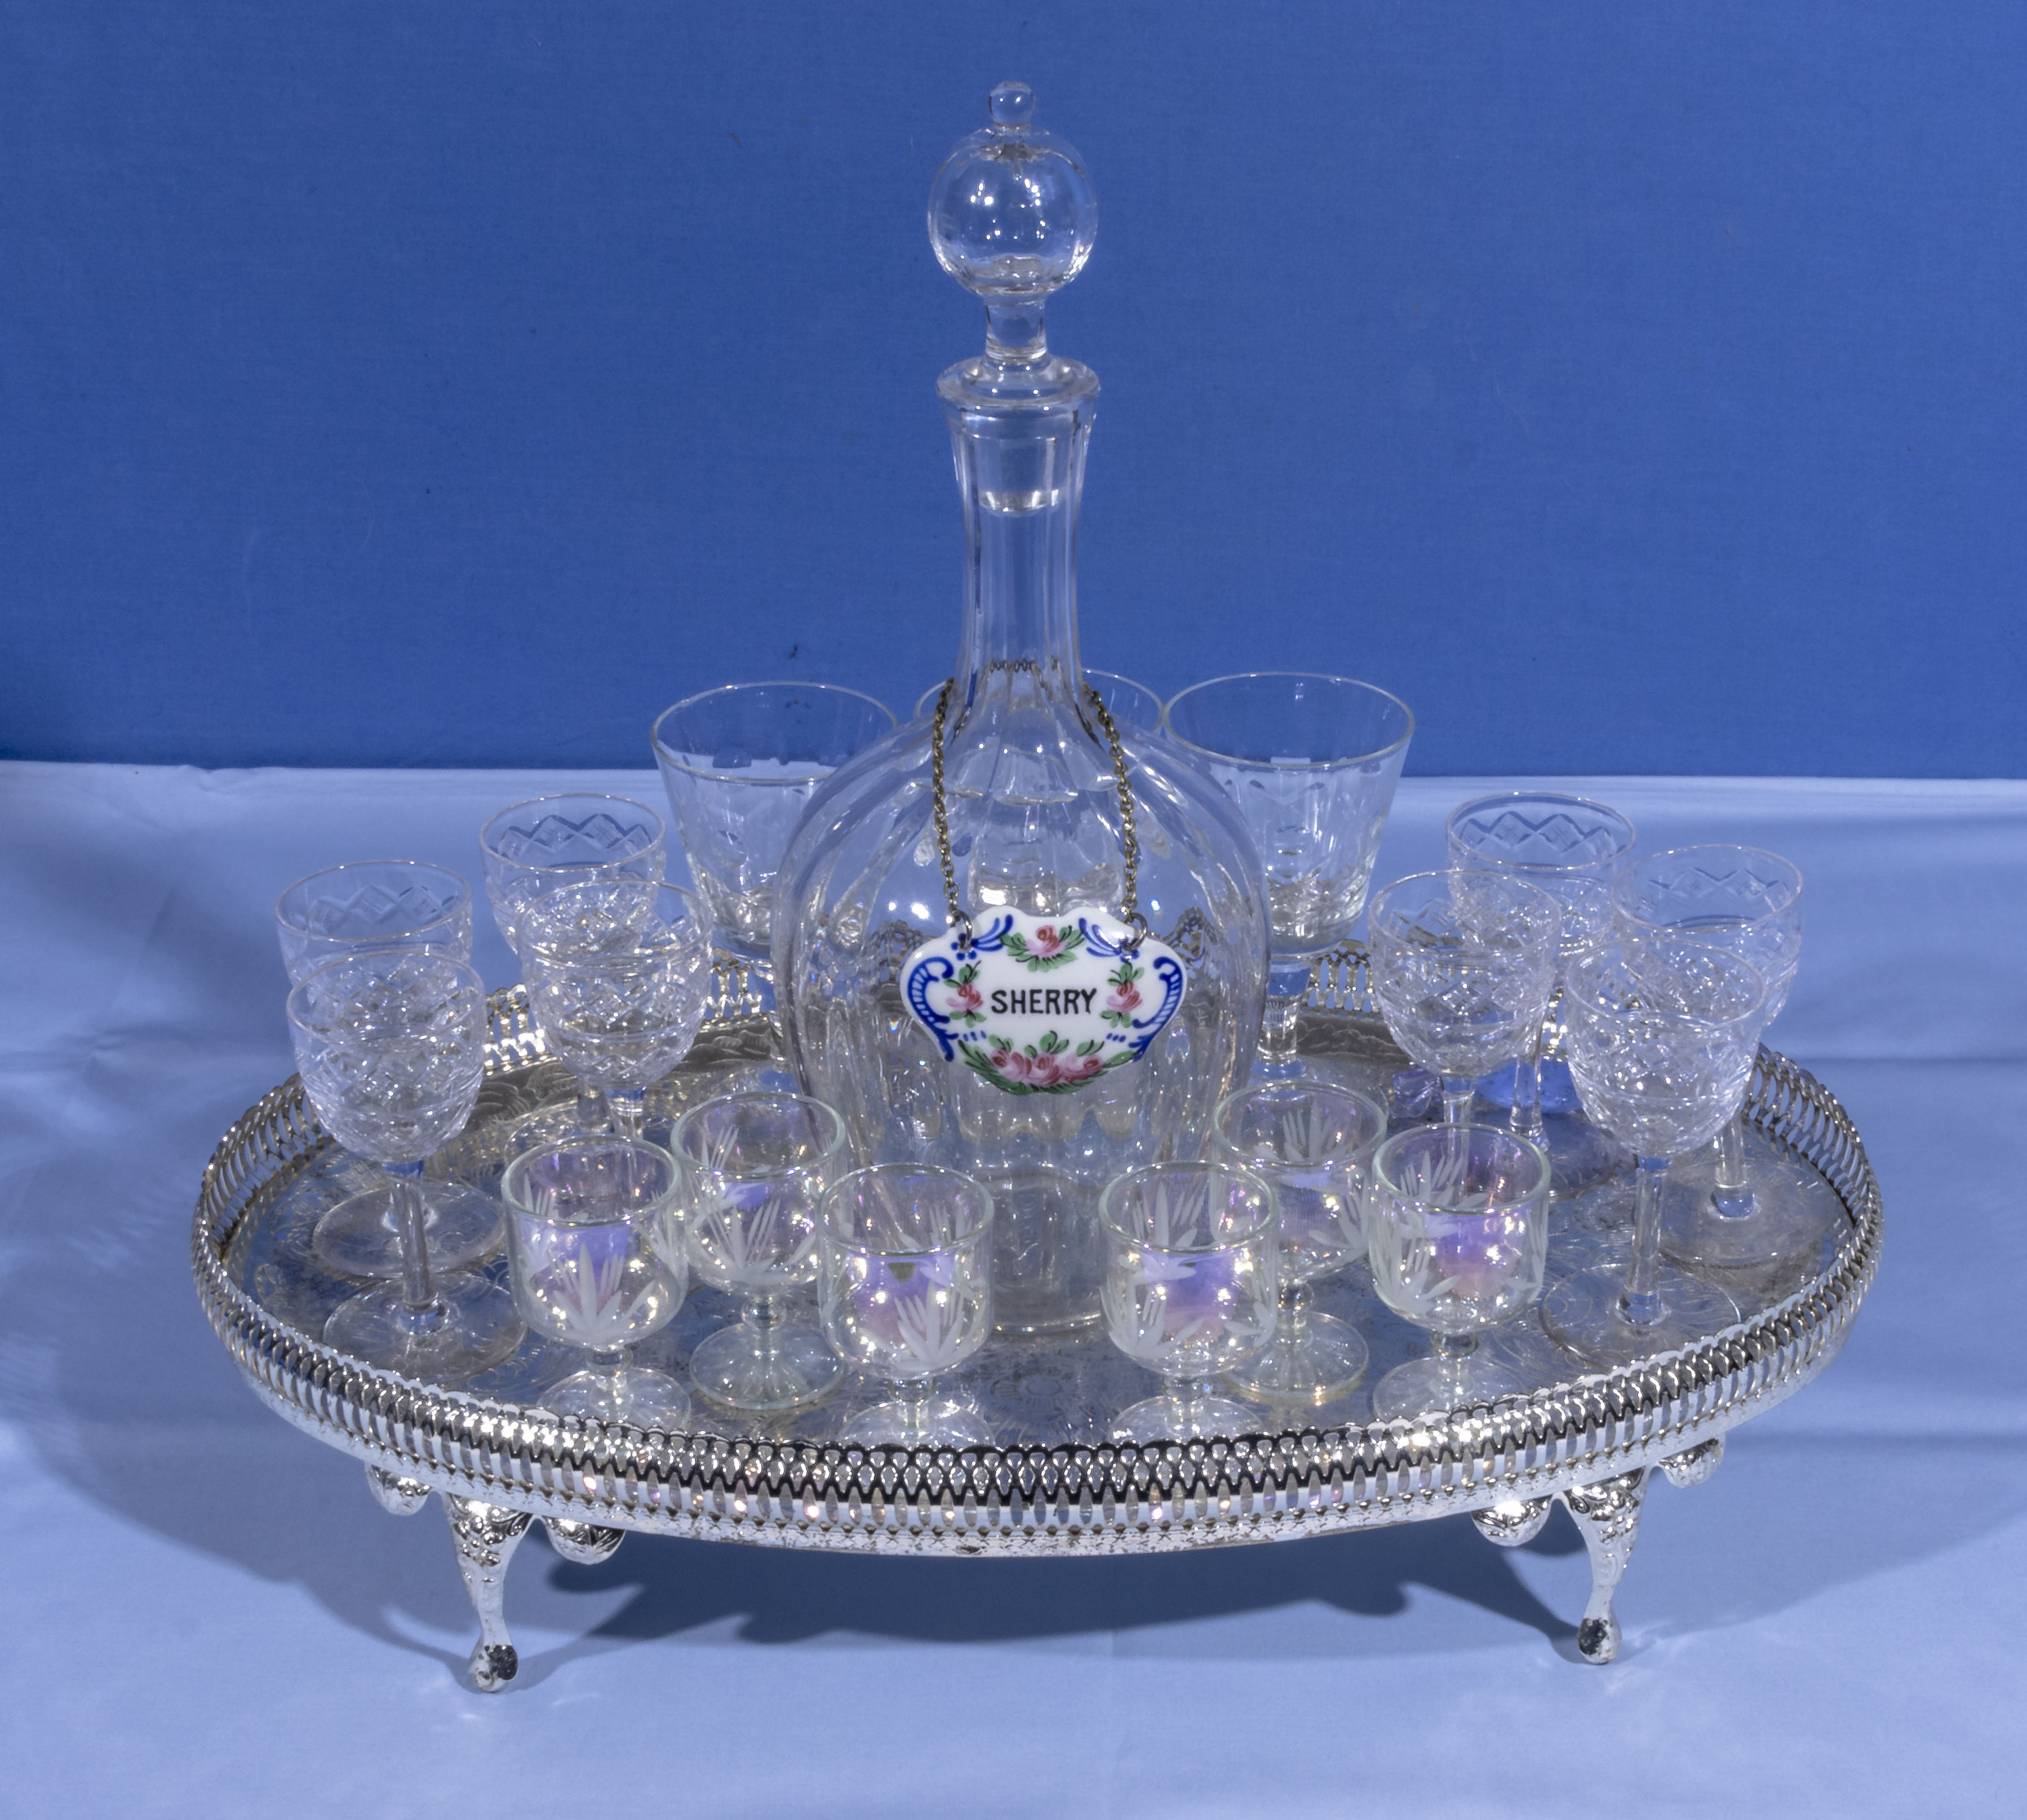 A selection of crystal port and sherry glasses together with a decanter and tray